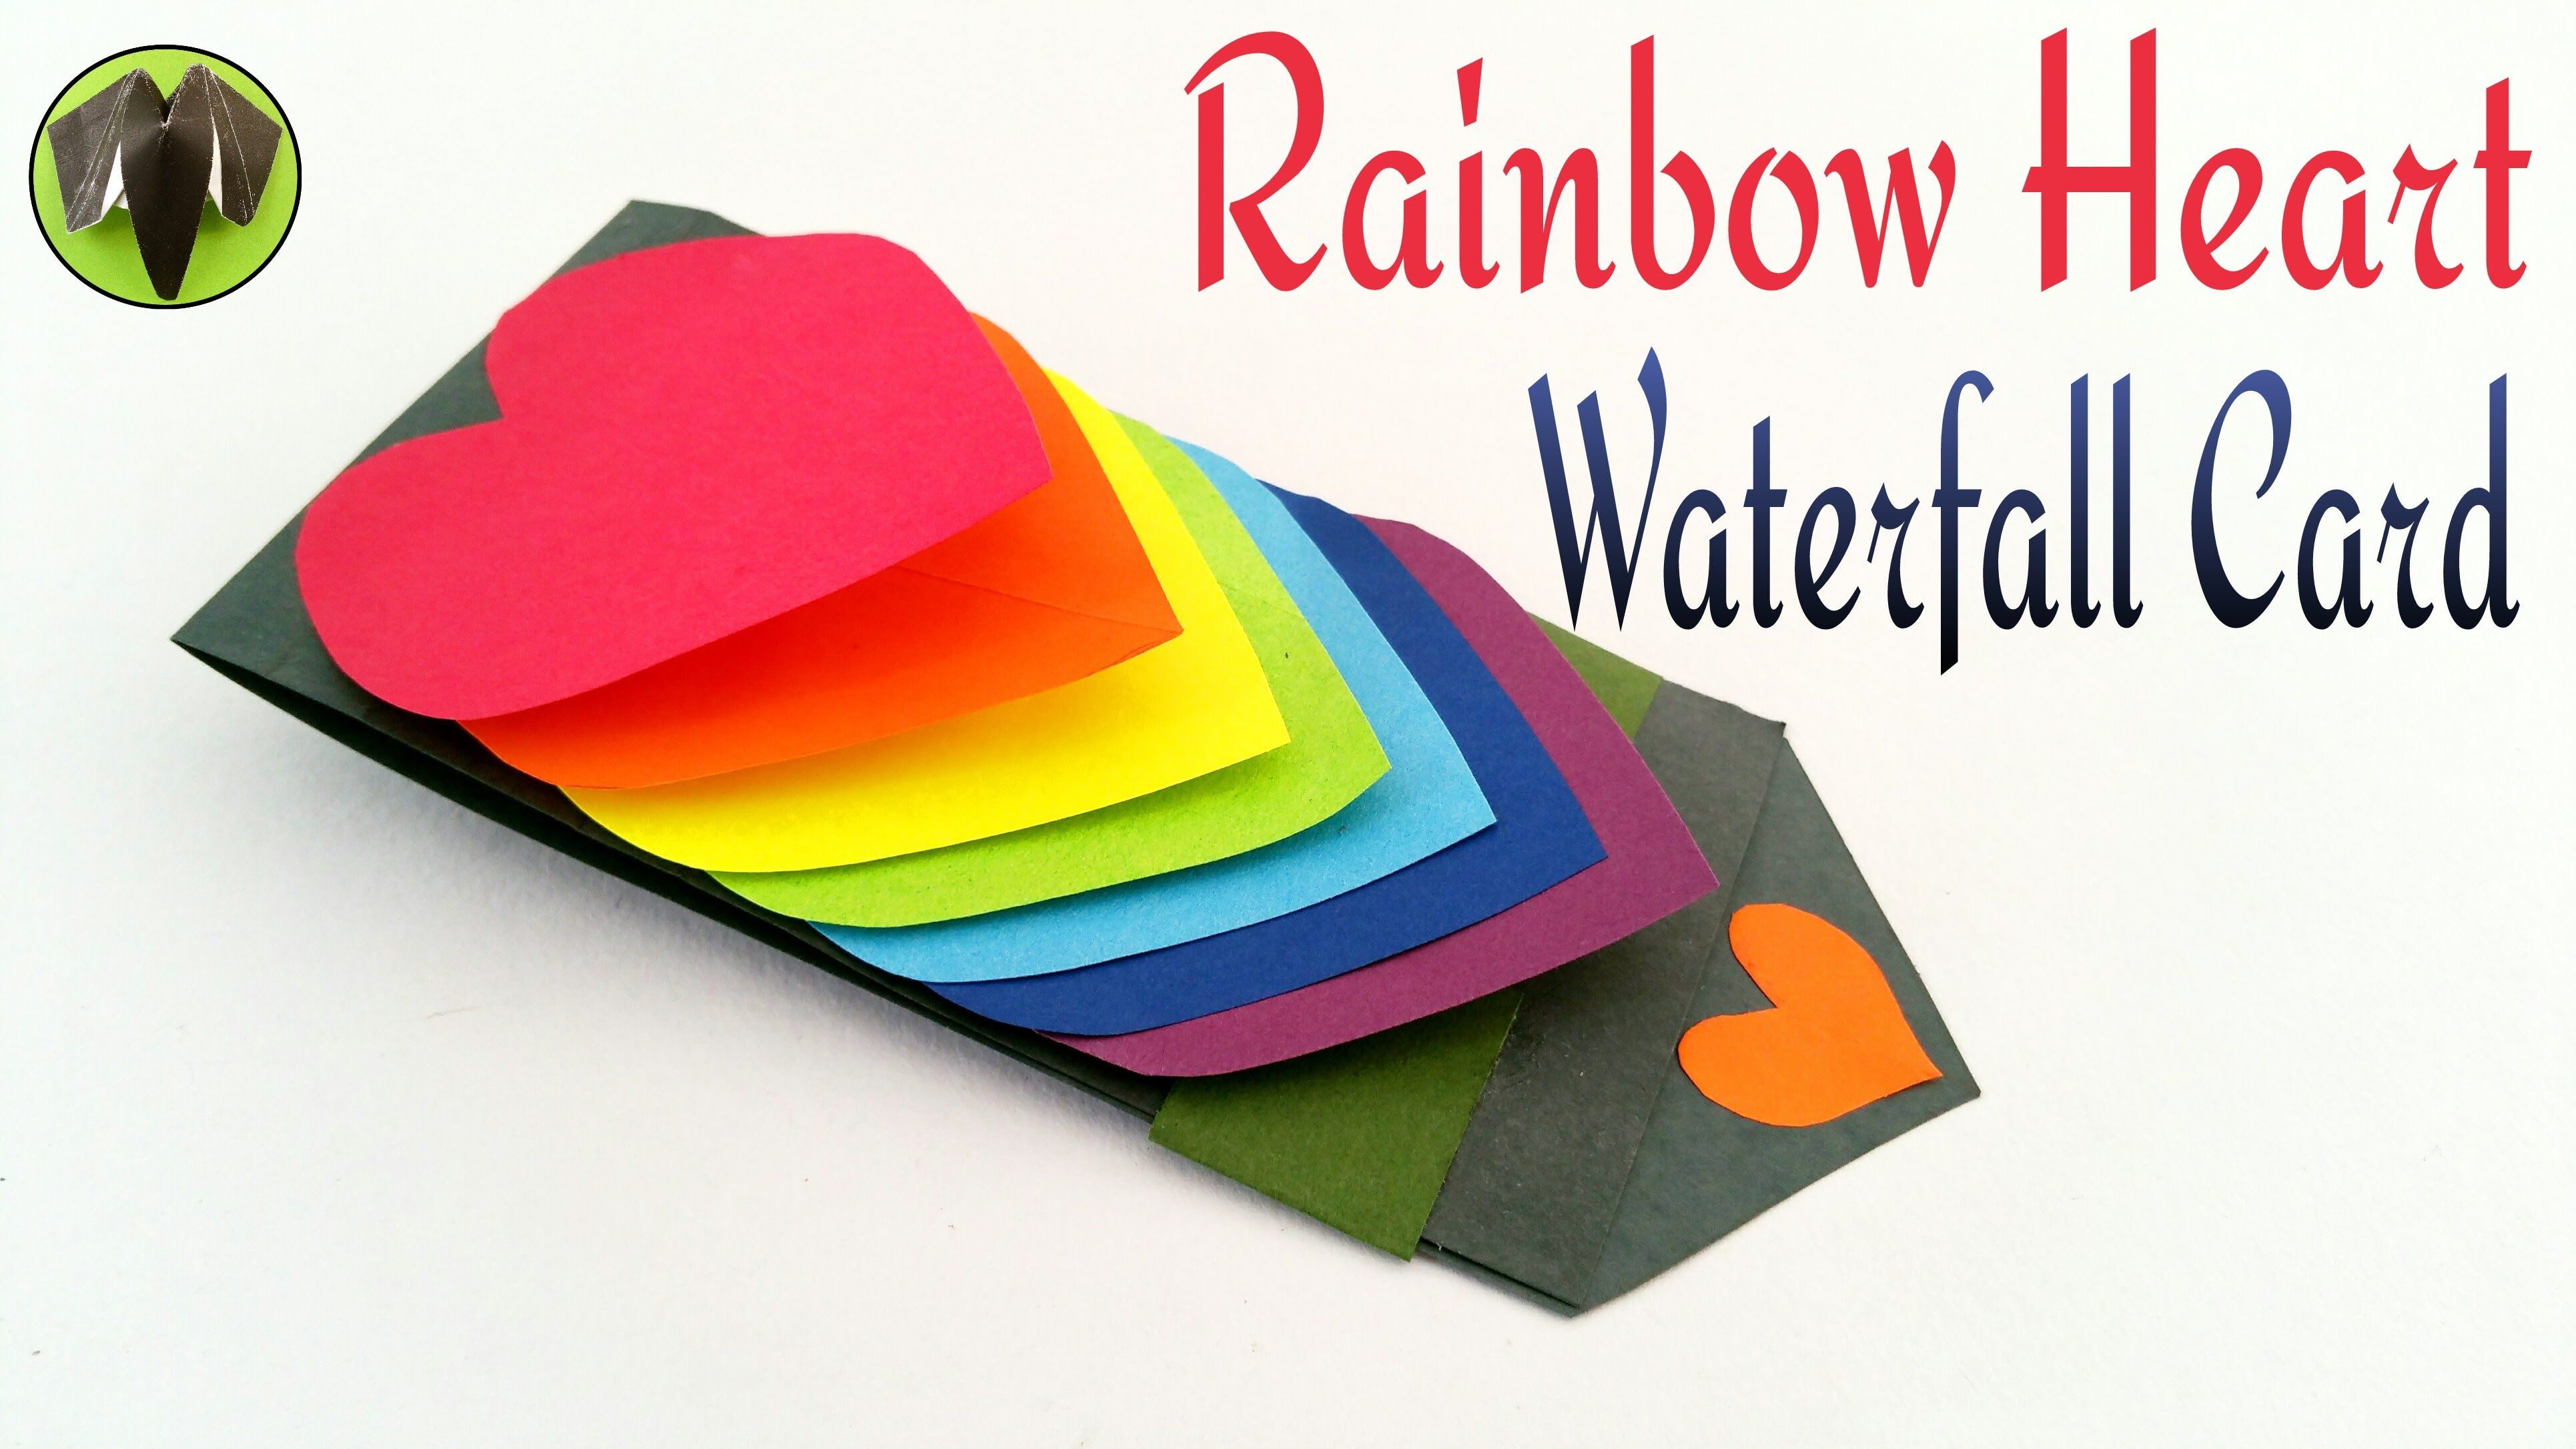 Craft Tutorial To Make Paper Rainbow Heart Waterfall Card